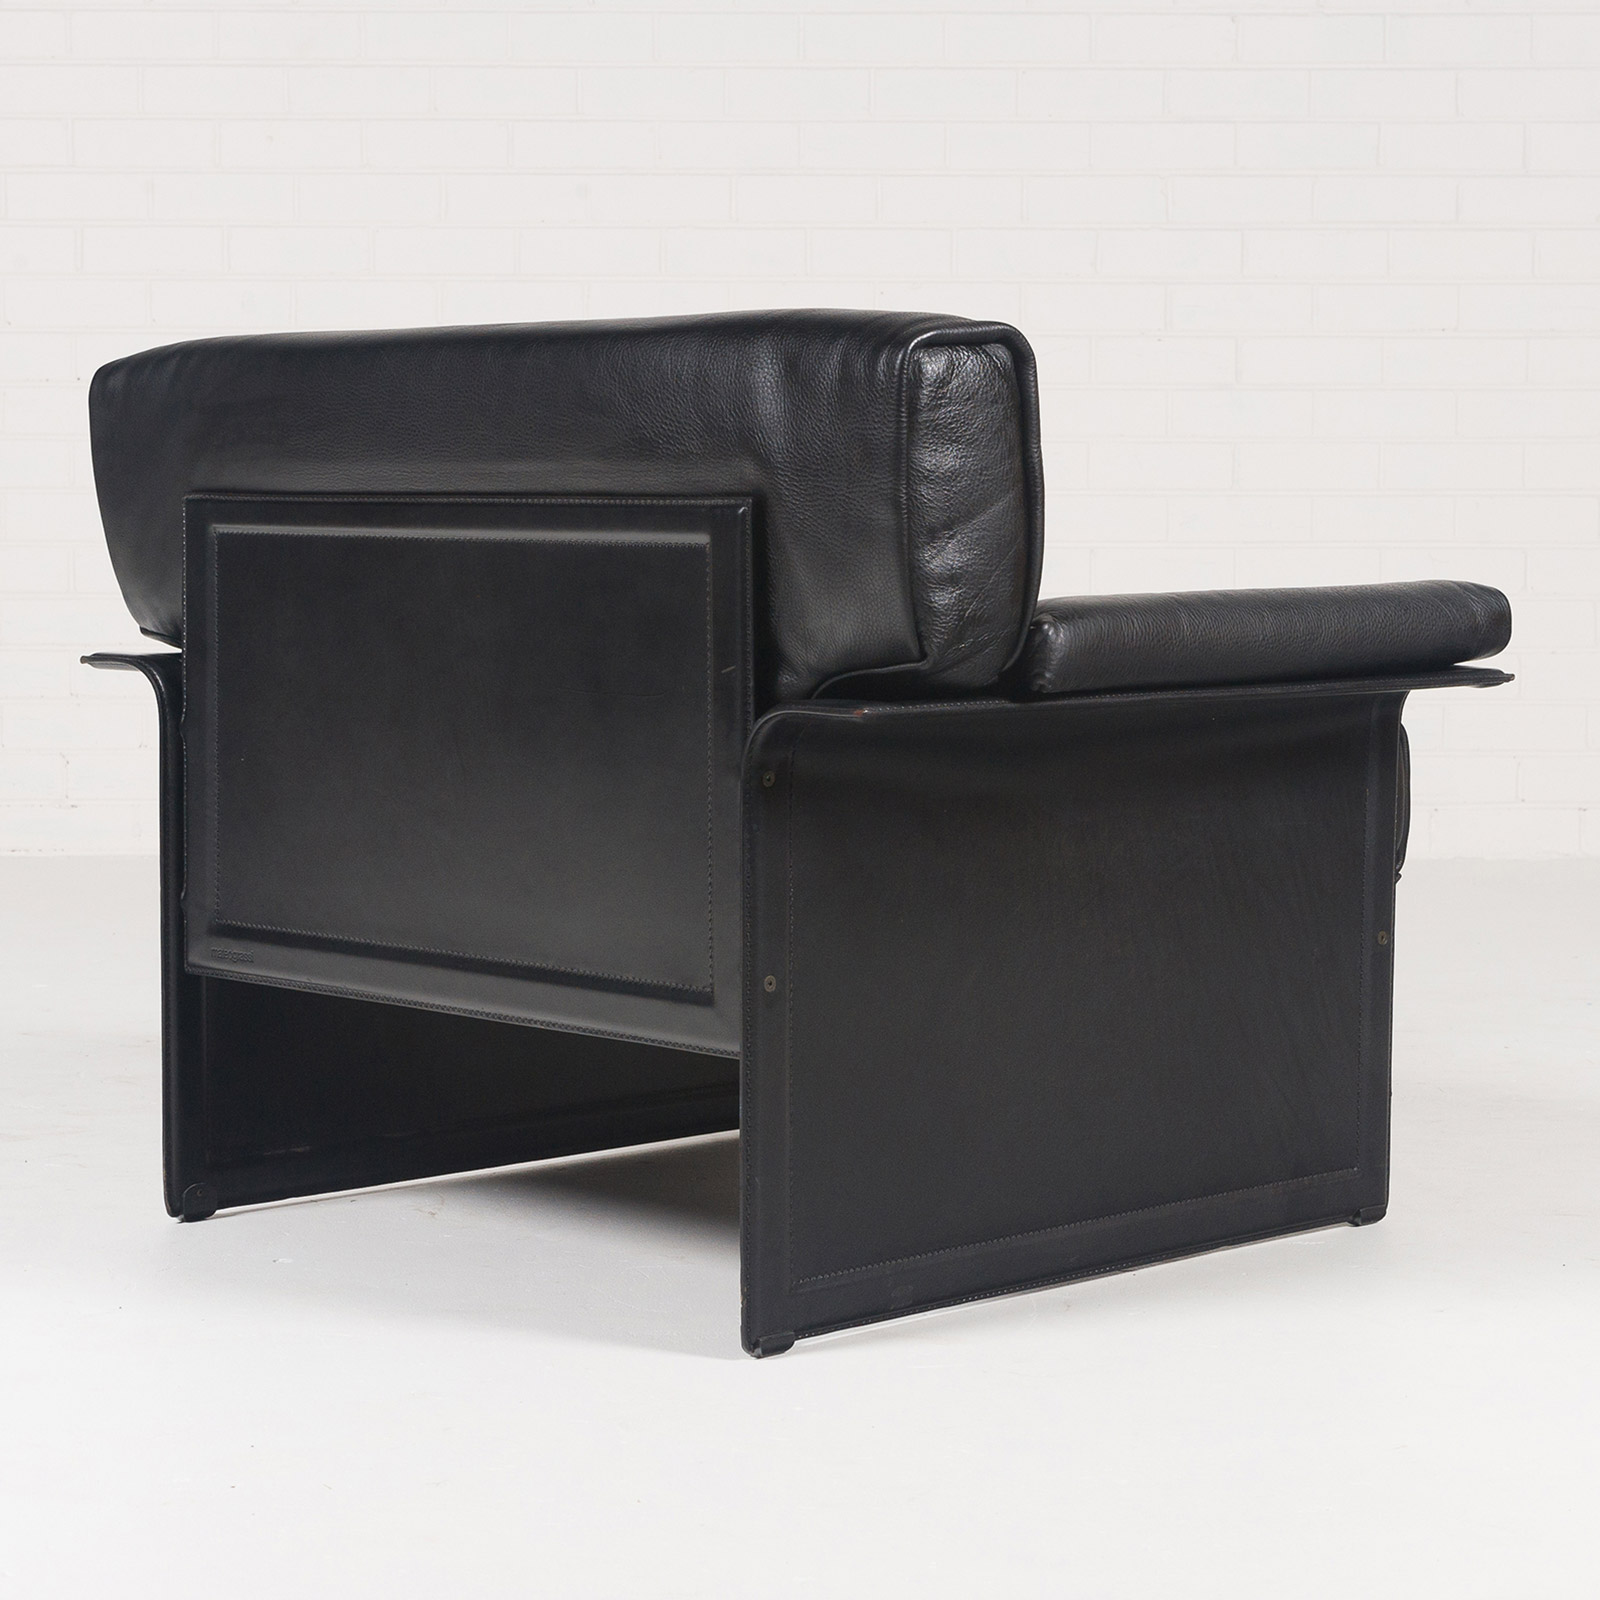 Armchair By Tito Agnoli For Matteo Grassi In Black Leather 1960s Italy 04